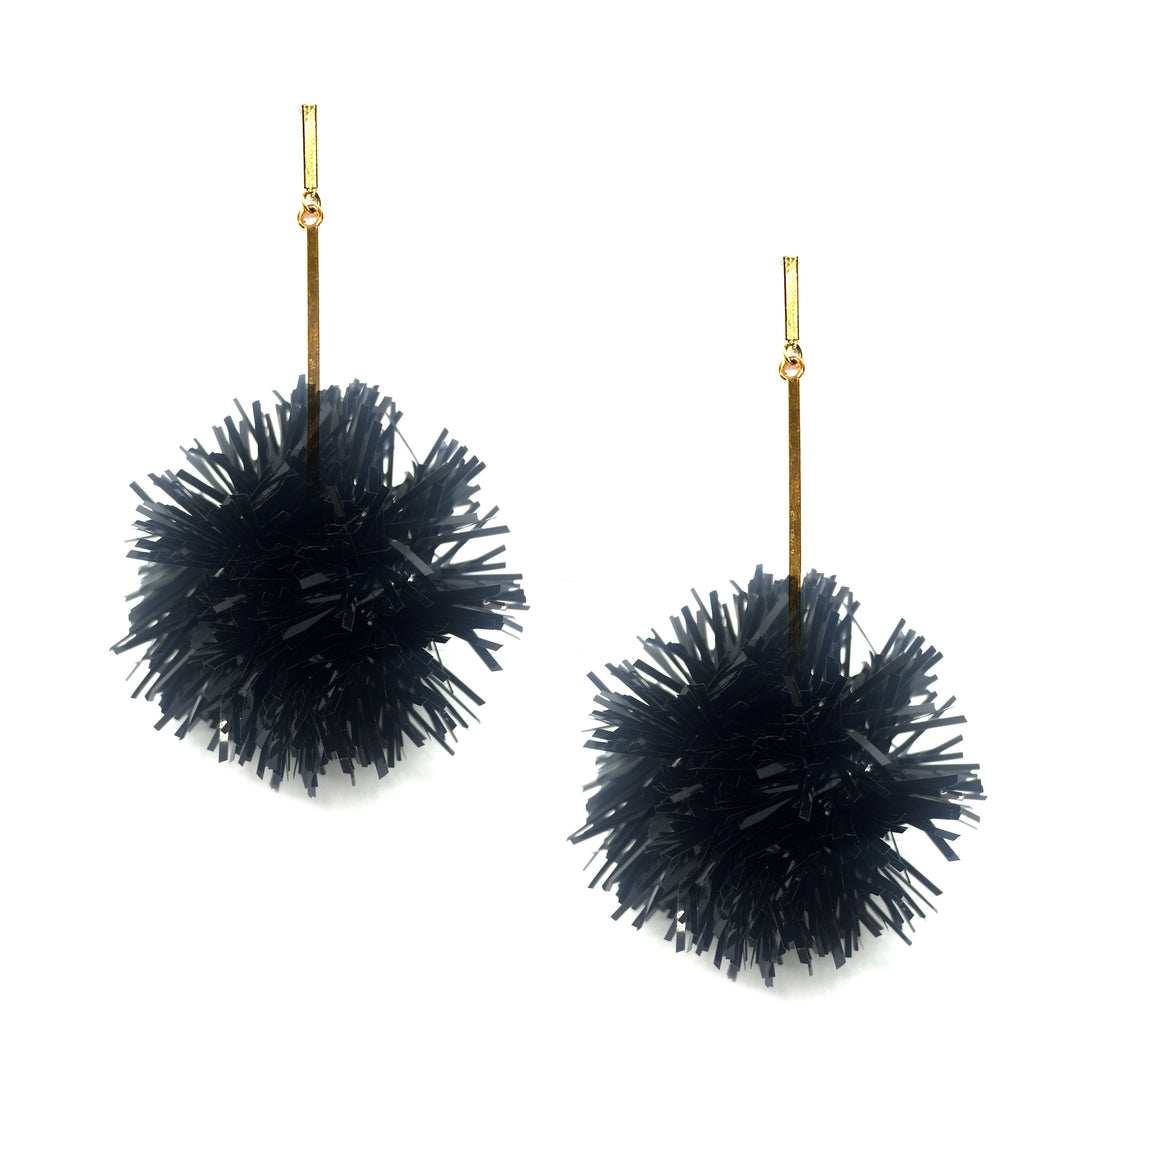 "2"" Black Lurex Pom Pom Earrings, Earrings, Tuleste, Tuleste"